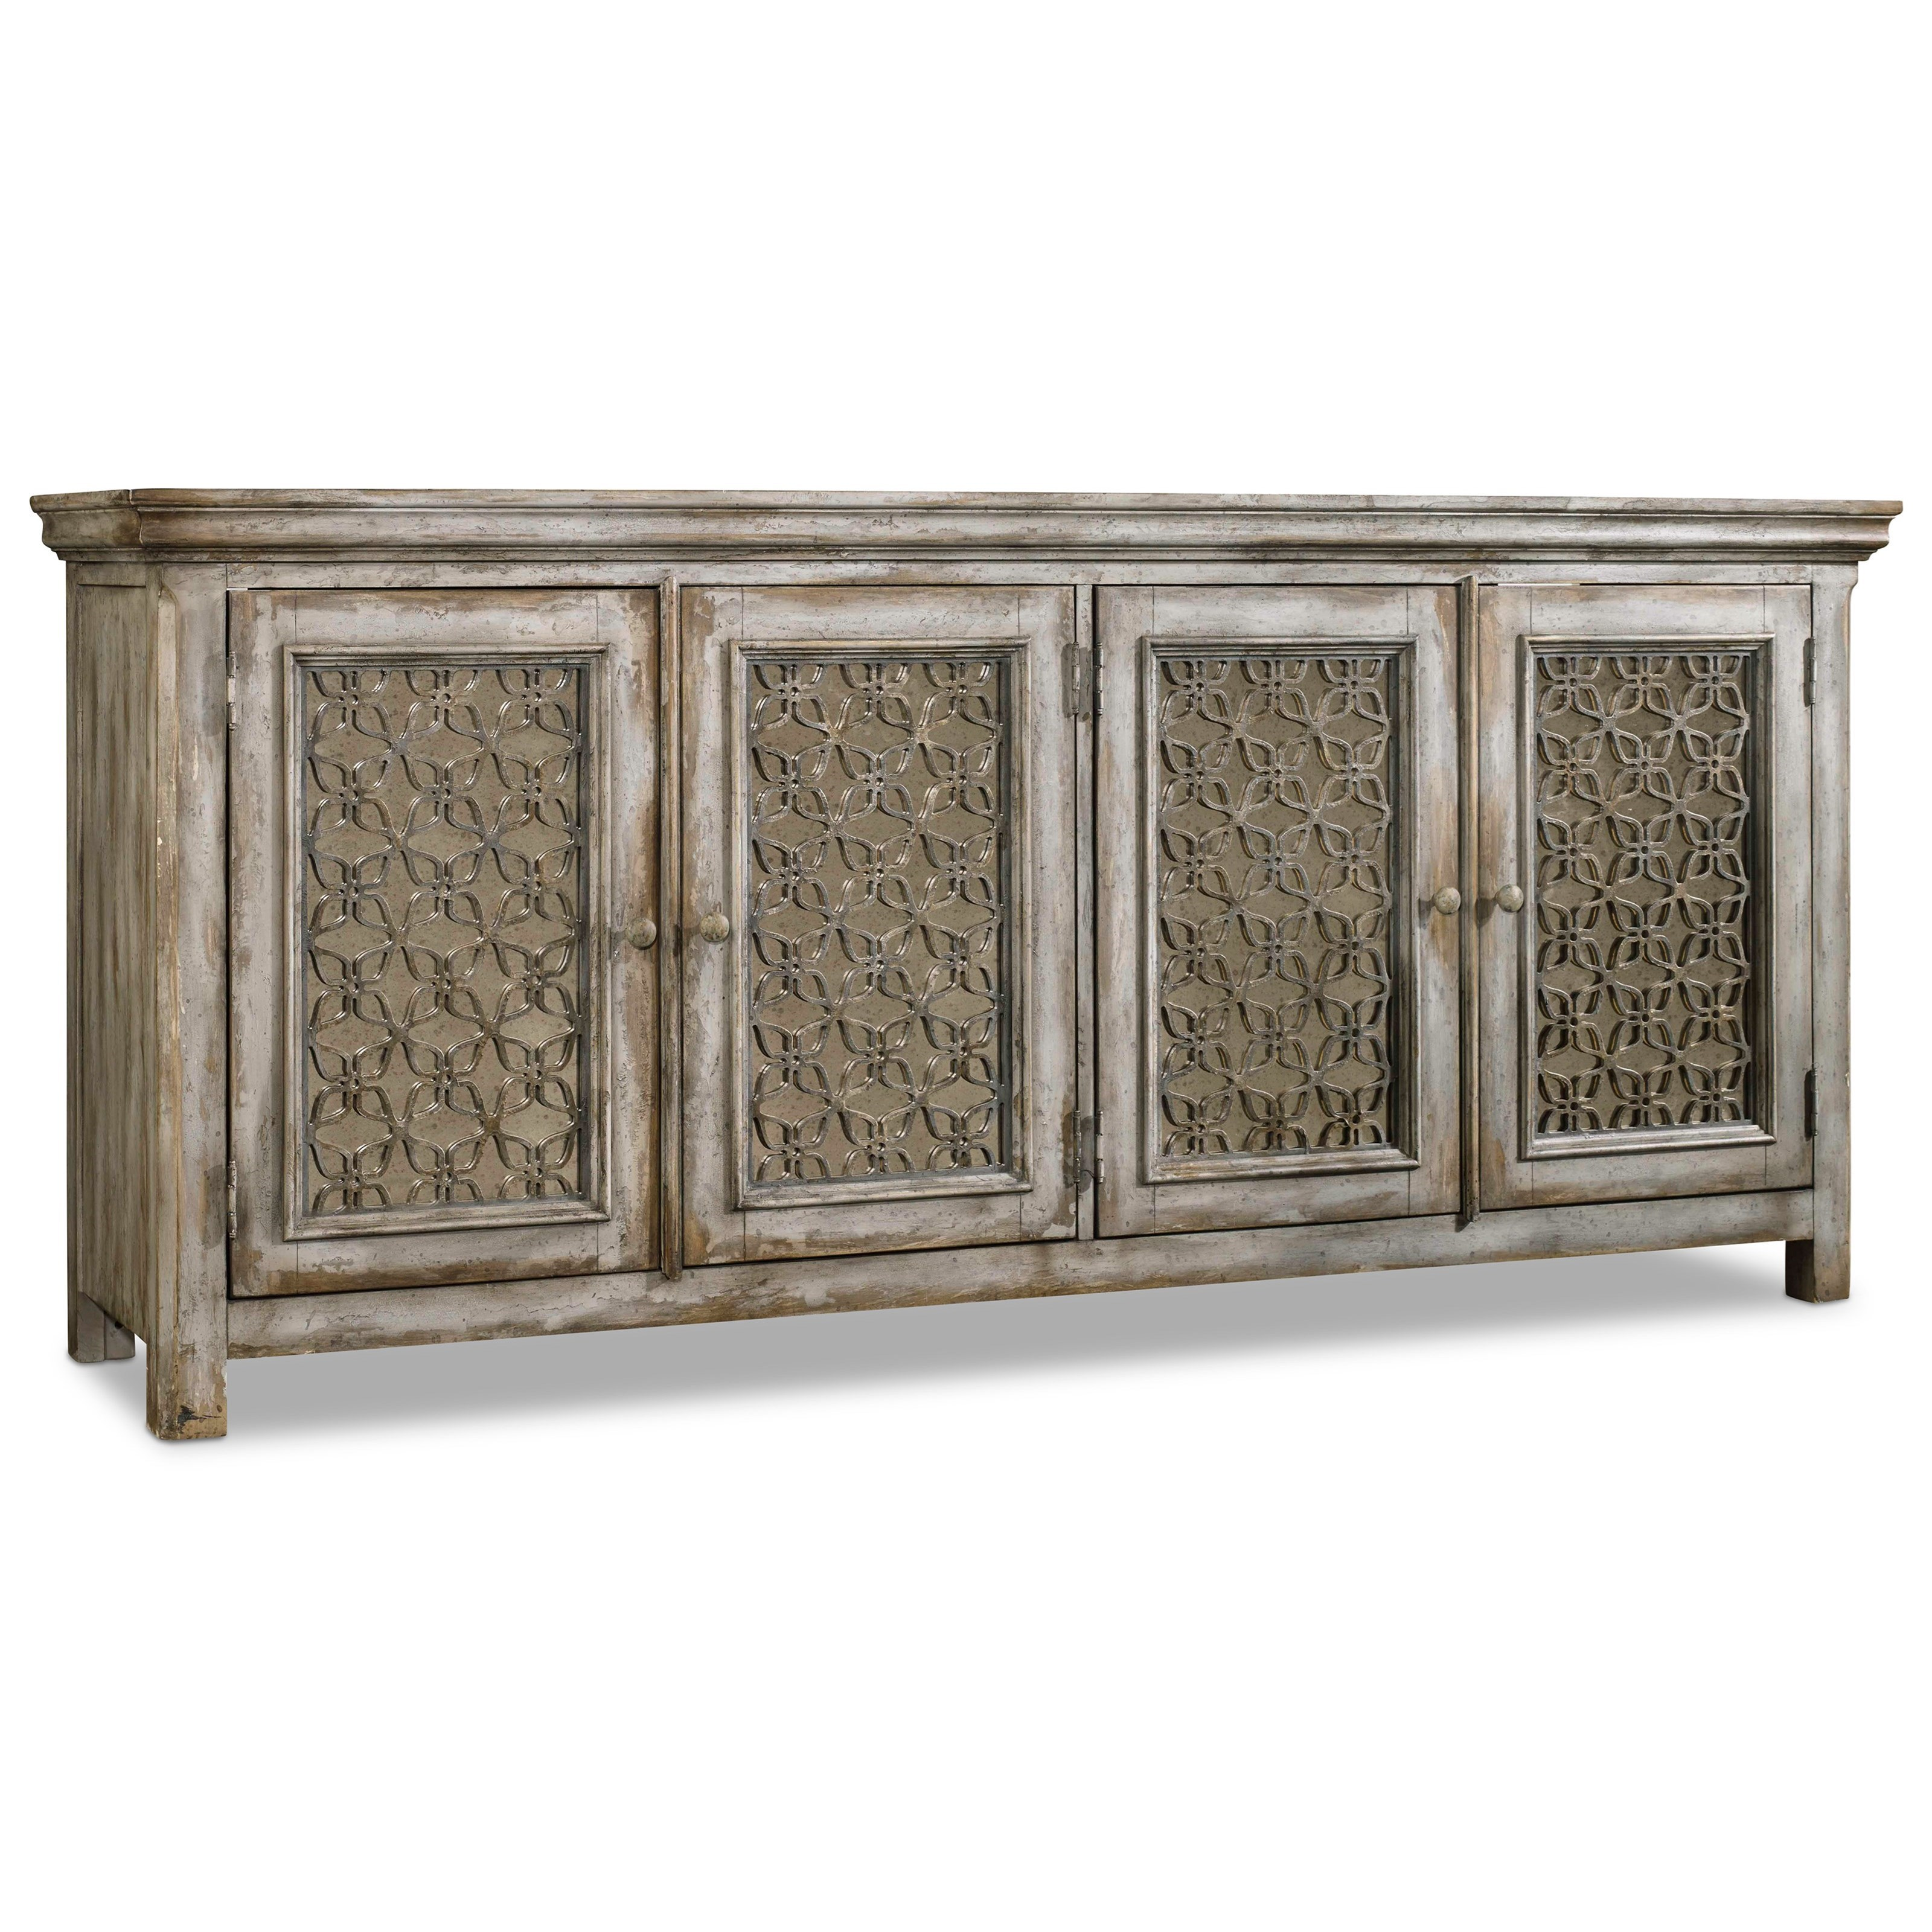 Hooker Furniture Mélange Dorian Credenza - Item Number: 638-85236